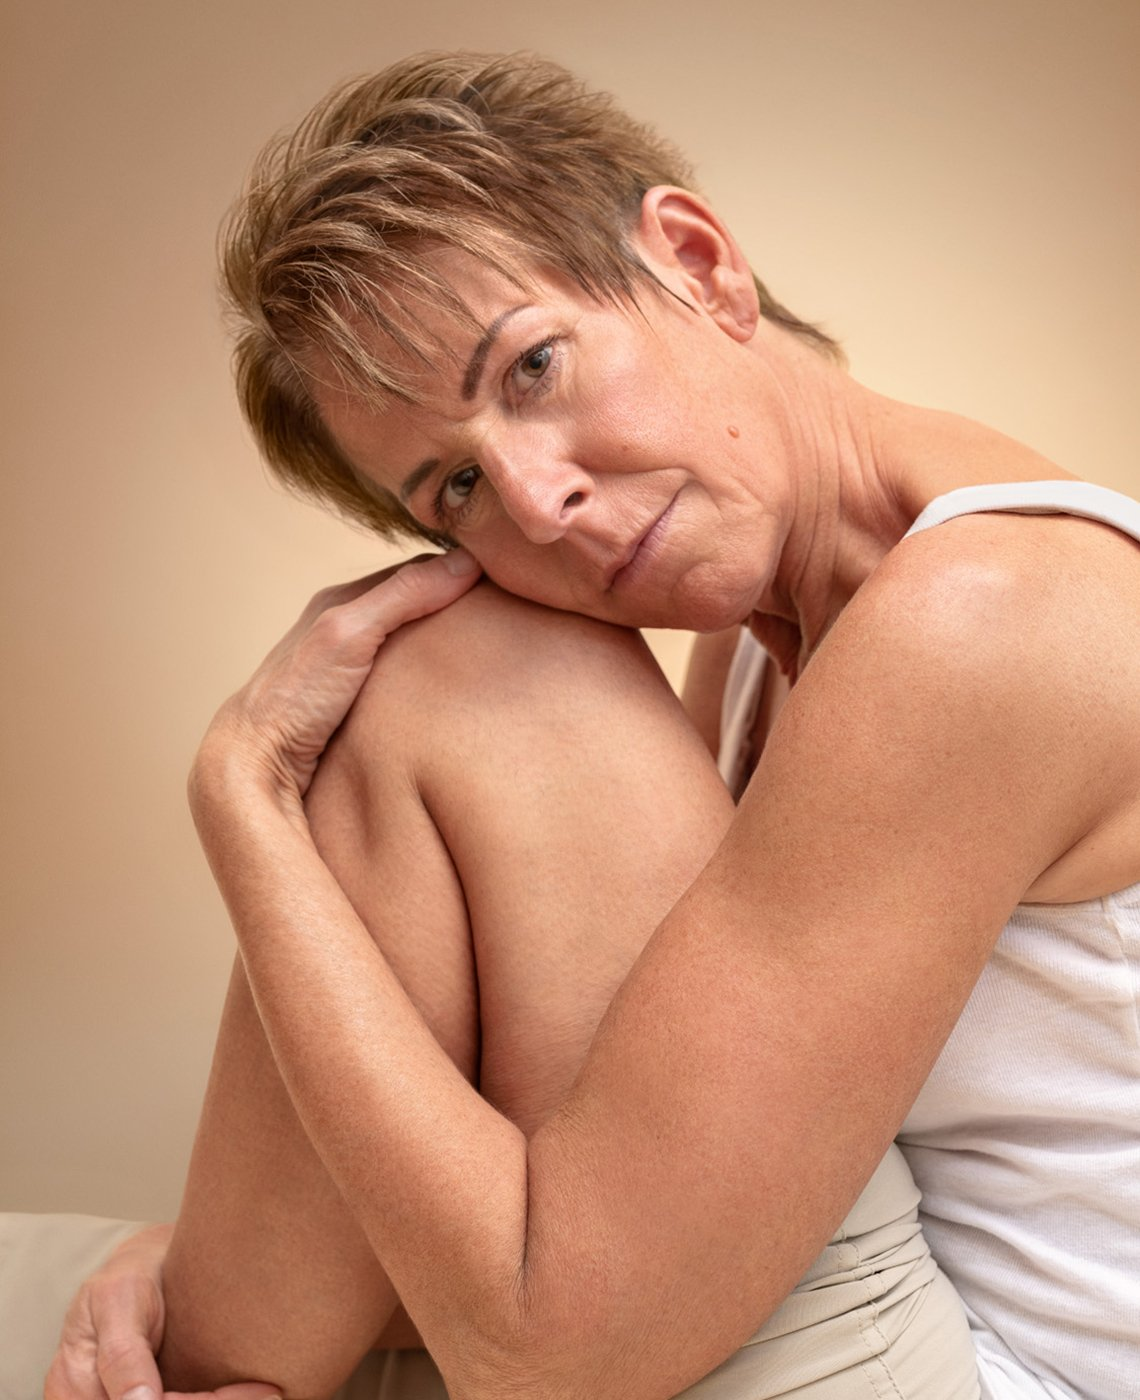 A woman that suffers from chronic pain